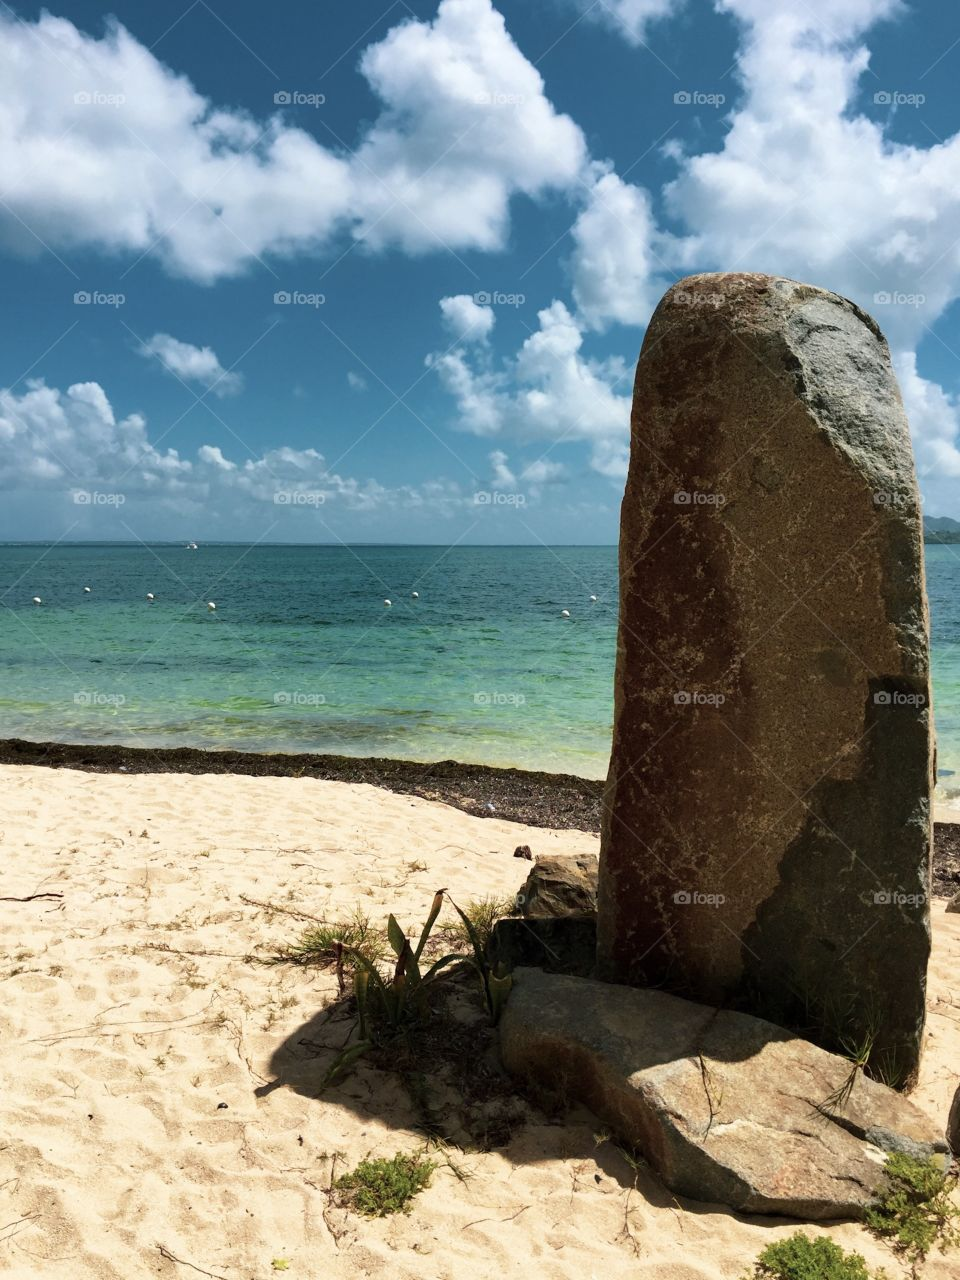 St. Maarten Beach Landscape, Oceanside View With Large Rock, Beautiful Landscape Photography, Beach With Turquoise Ocean Waters